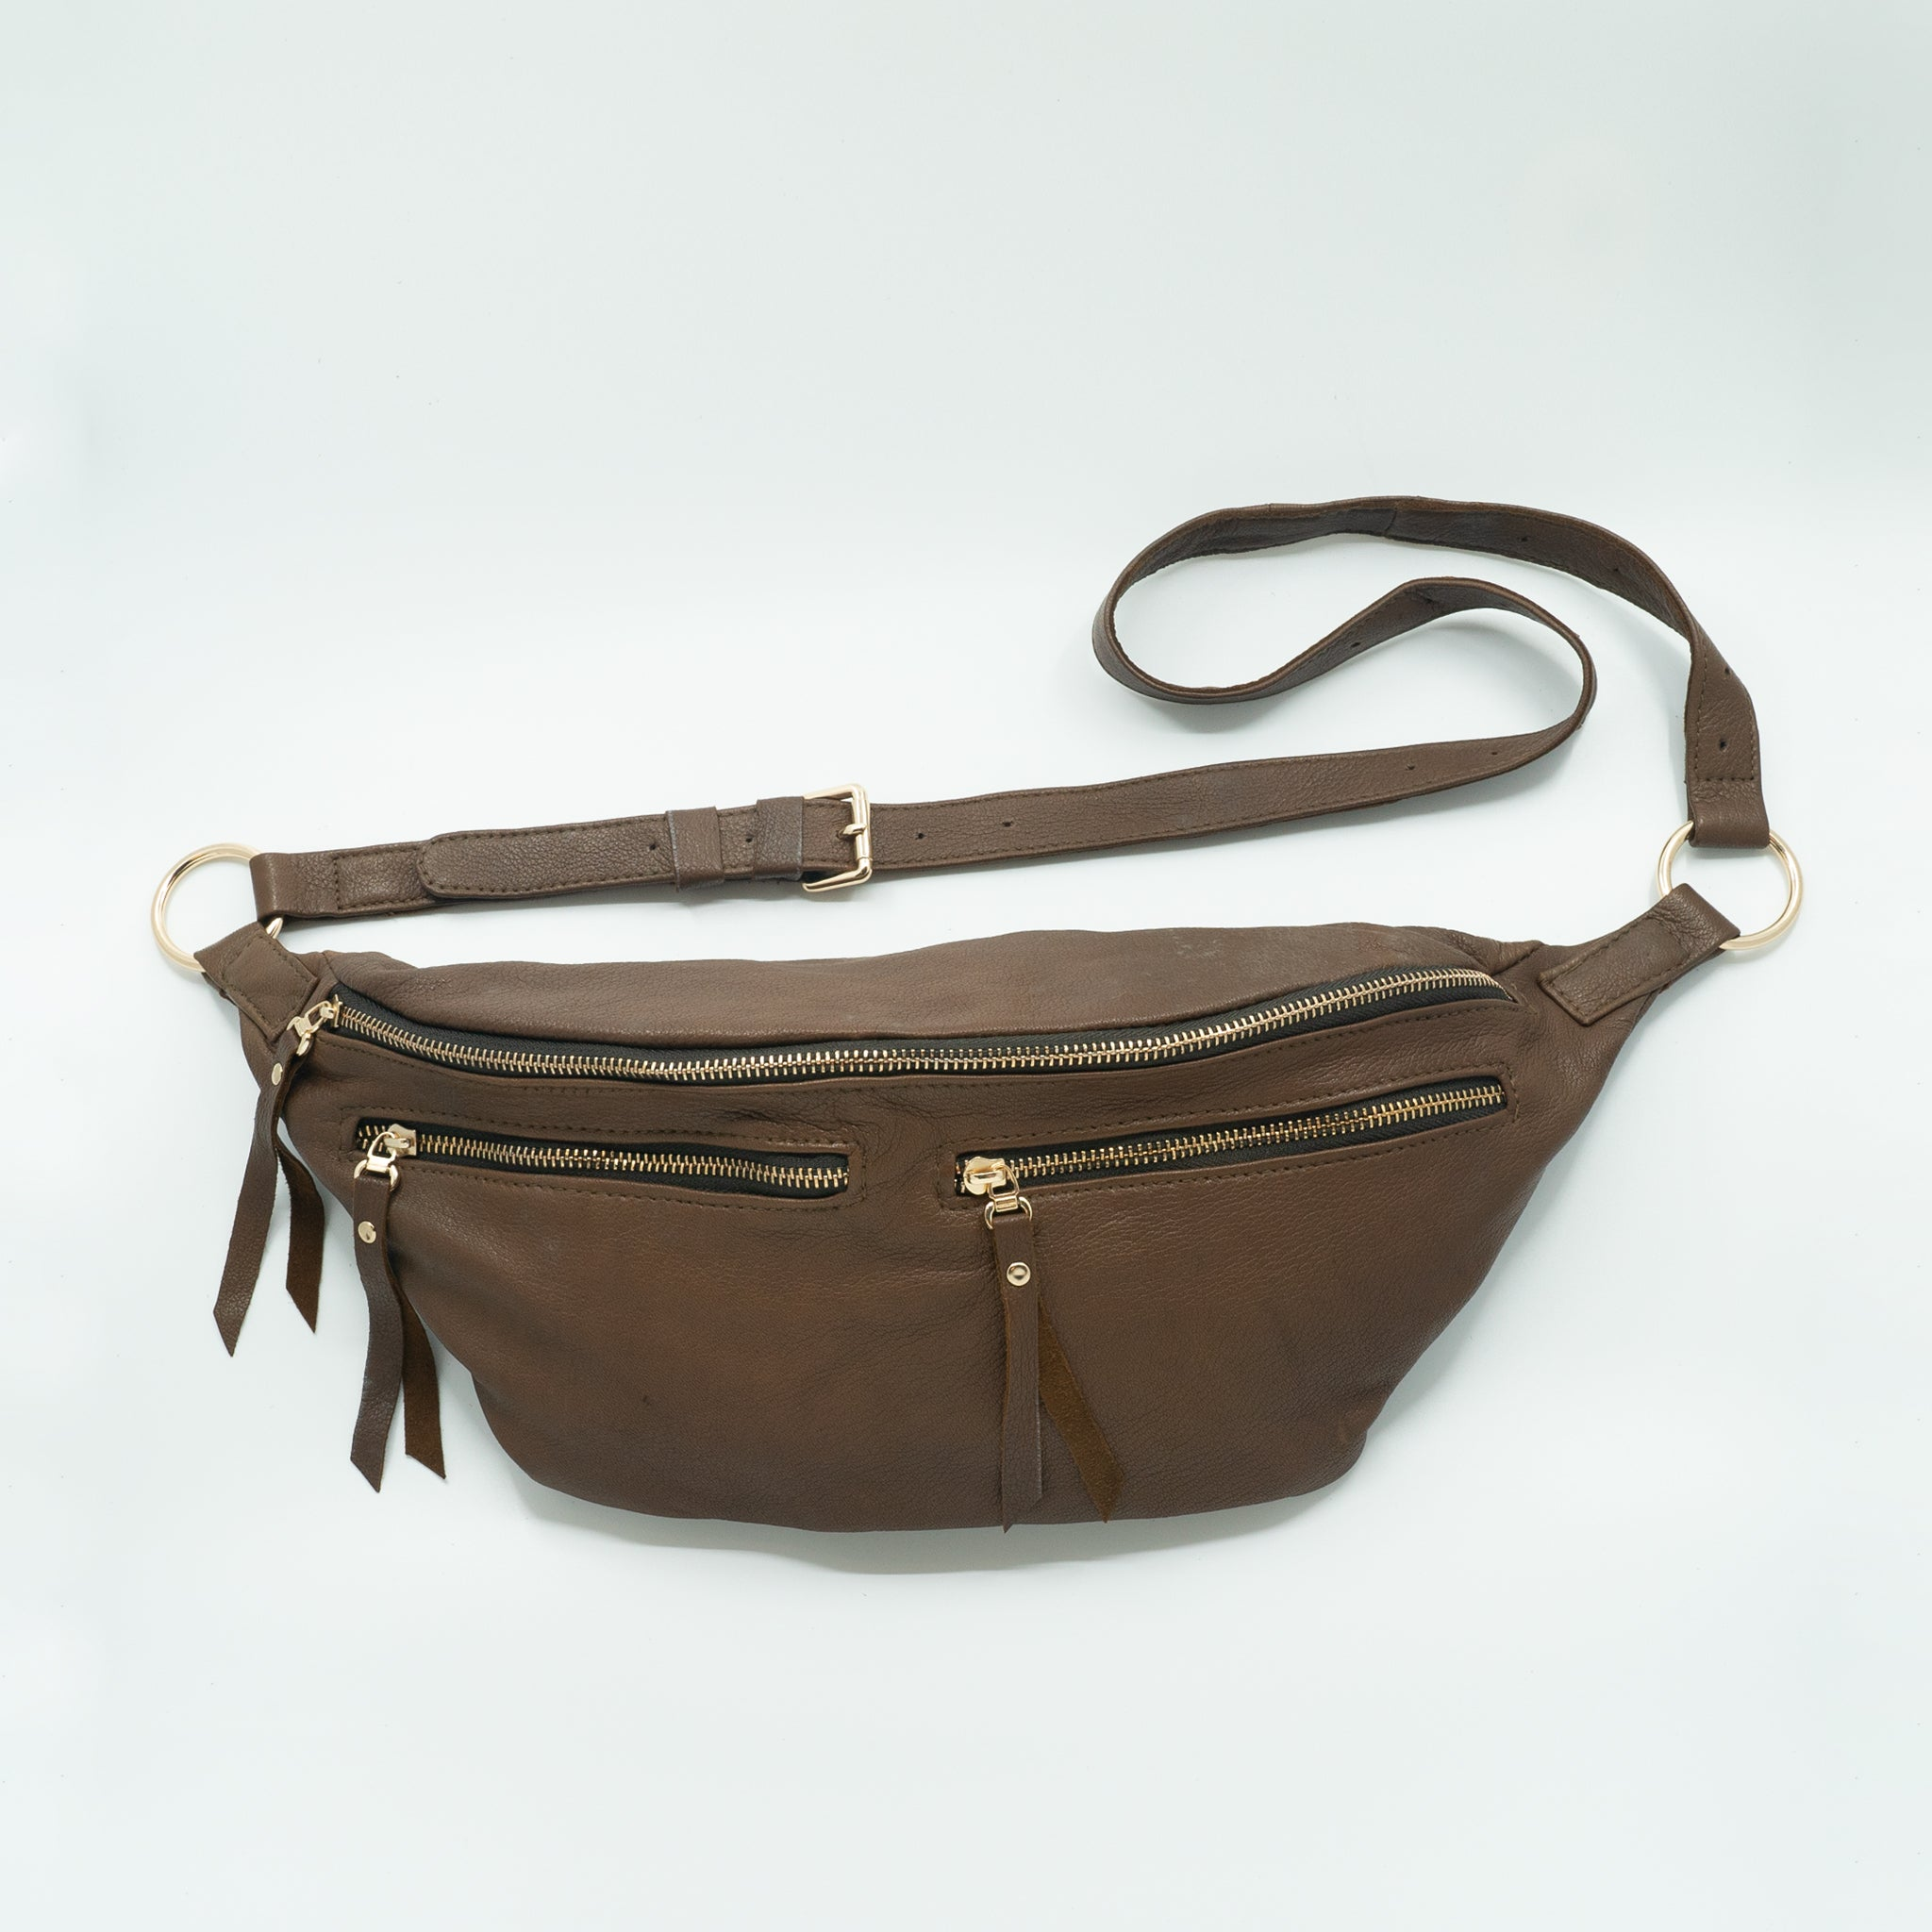 The Everywhere Bag #27 — Deep Cinnamon Leather with Gold Hardware